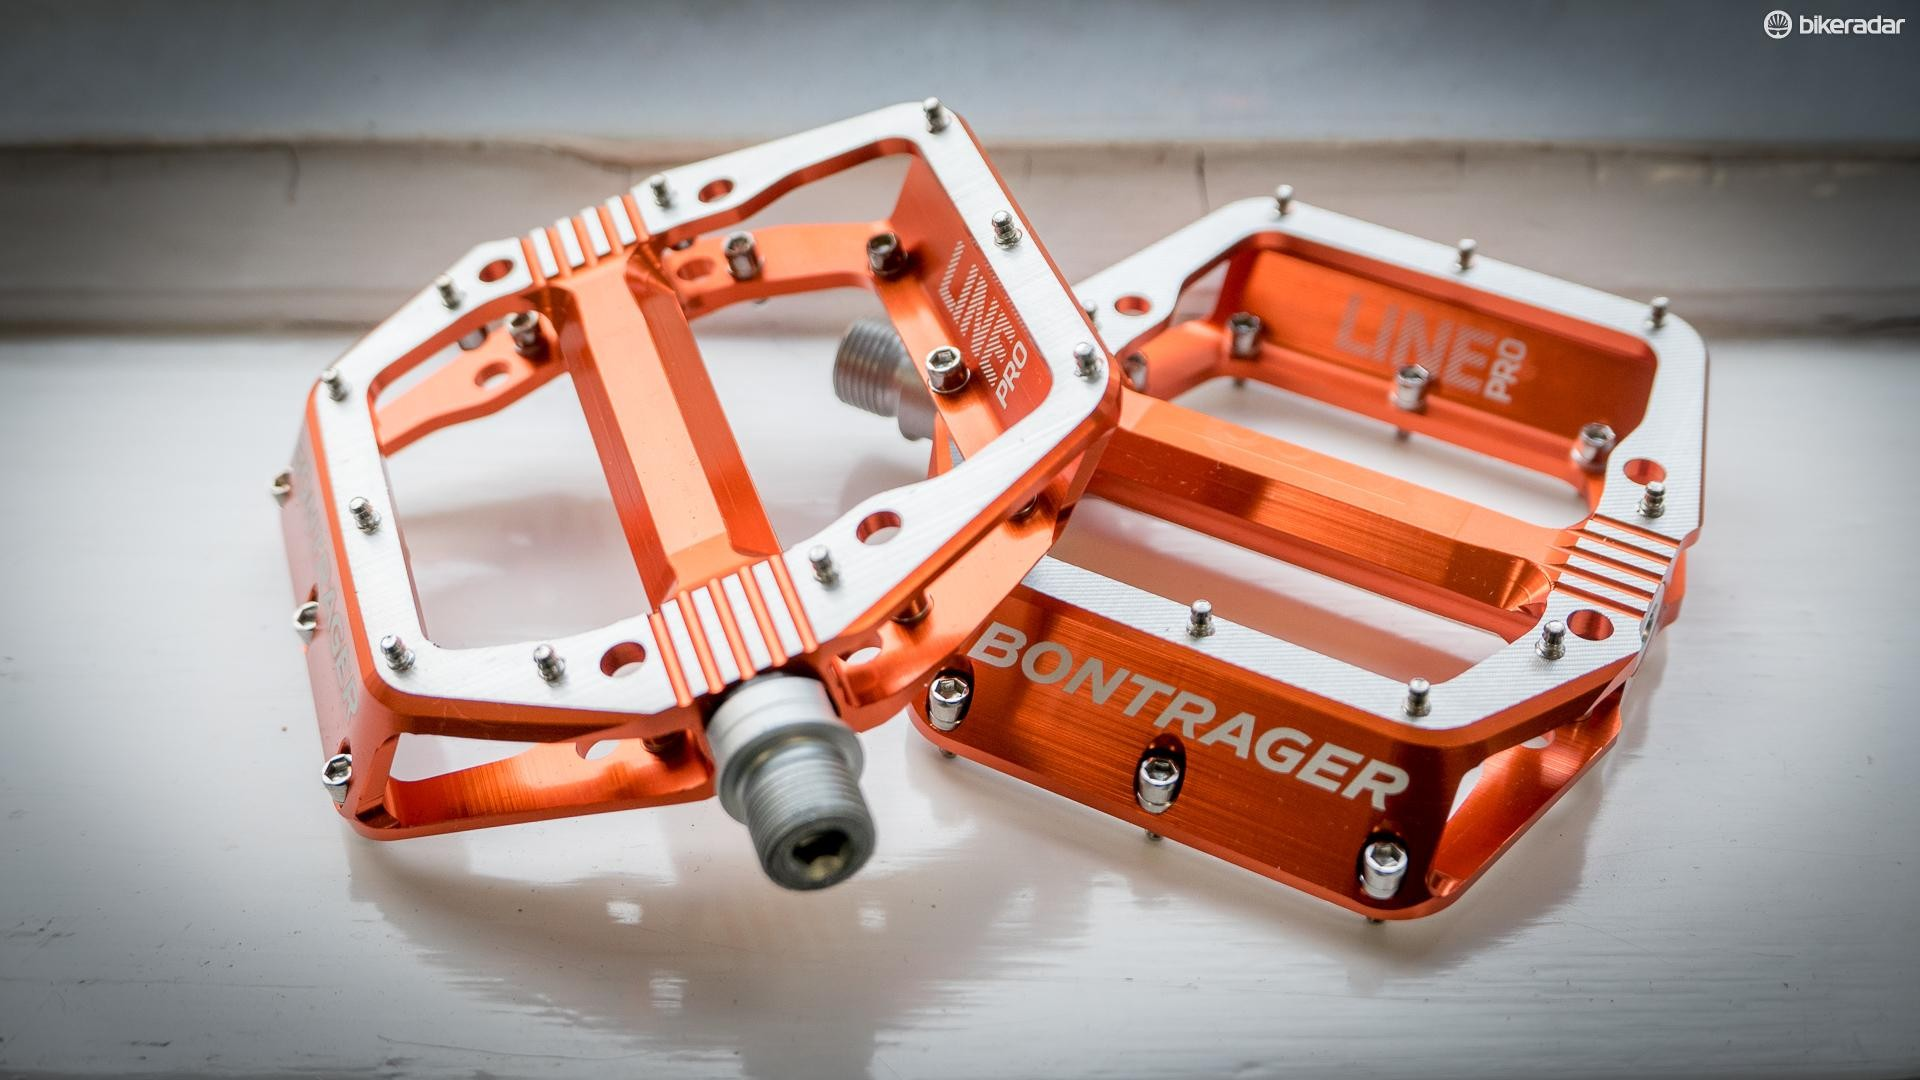 Bontrager's Line Pro pedals feature height-adjustable pins to allow you to finetune your fit and grip